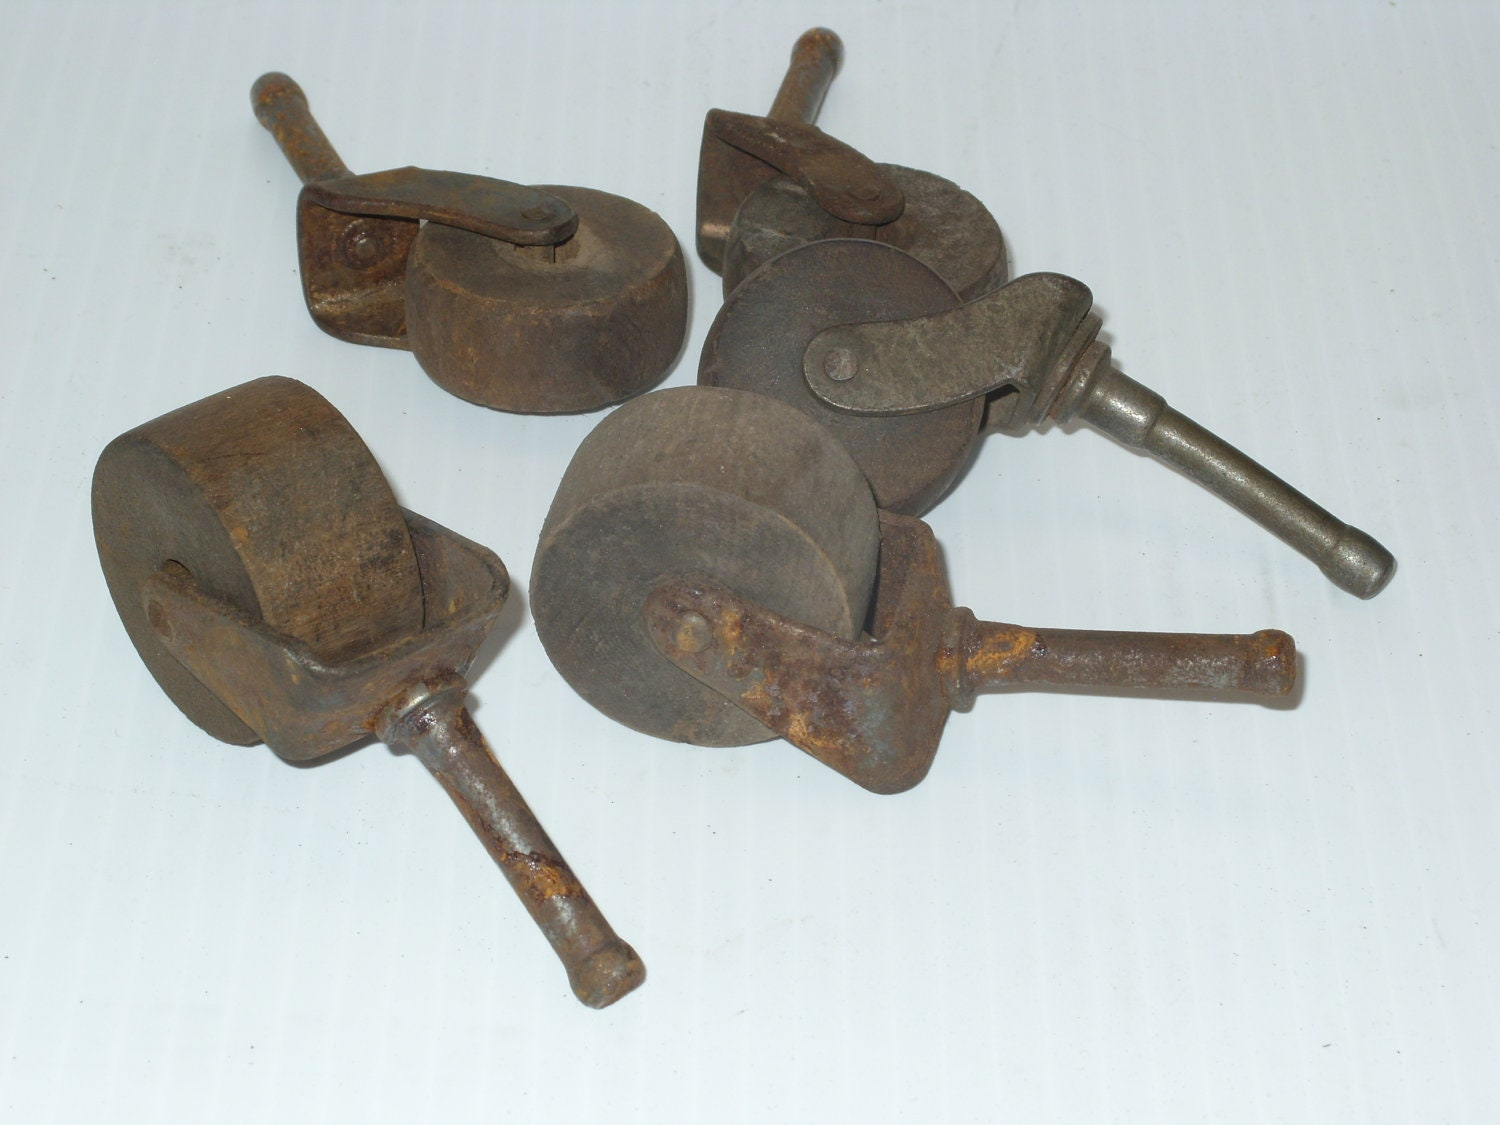 Antique Wooden Furniture Or Bed Casters Wheels By Earlstonantiques